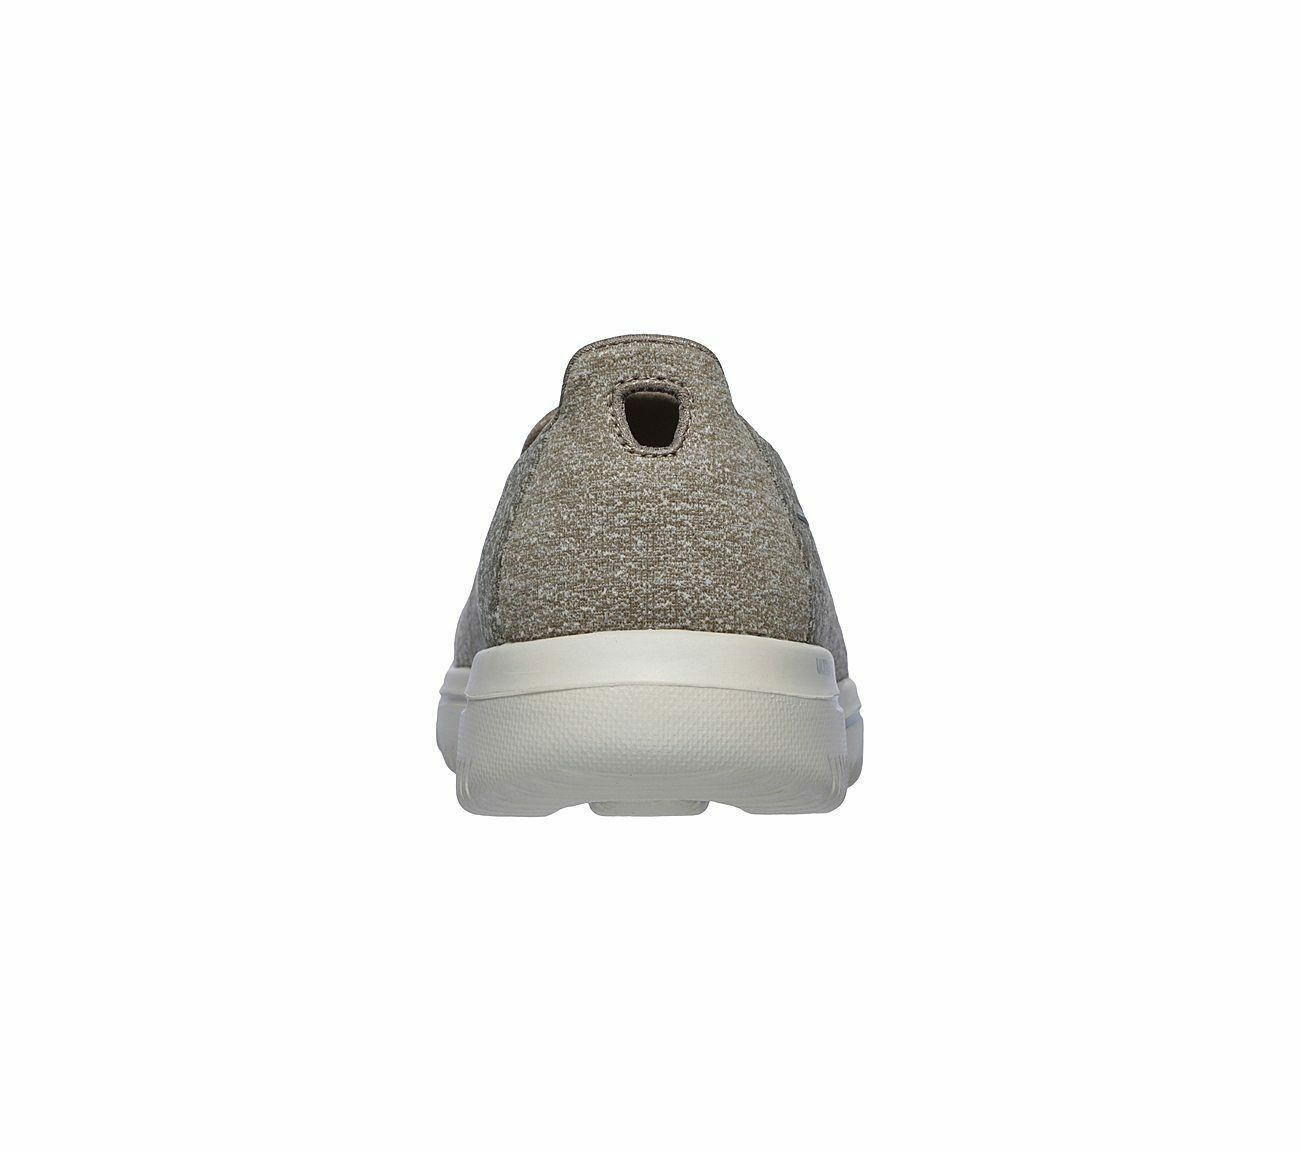 Skechers Shoes Taupe Go Walk Women Super Suck Soft Casual Slip On Comfort 15732 image 6